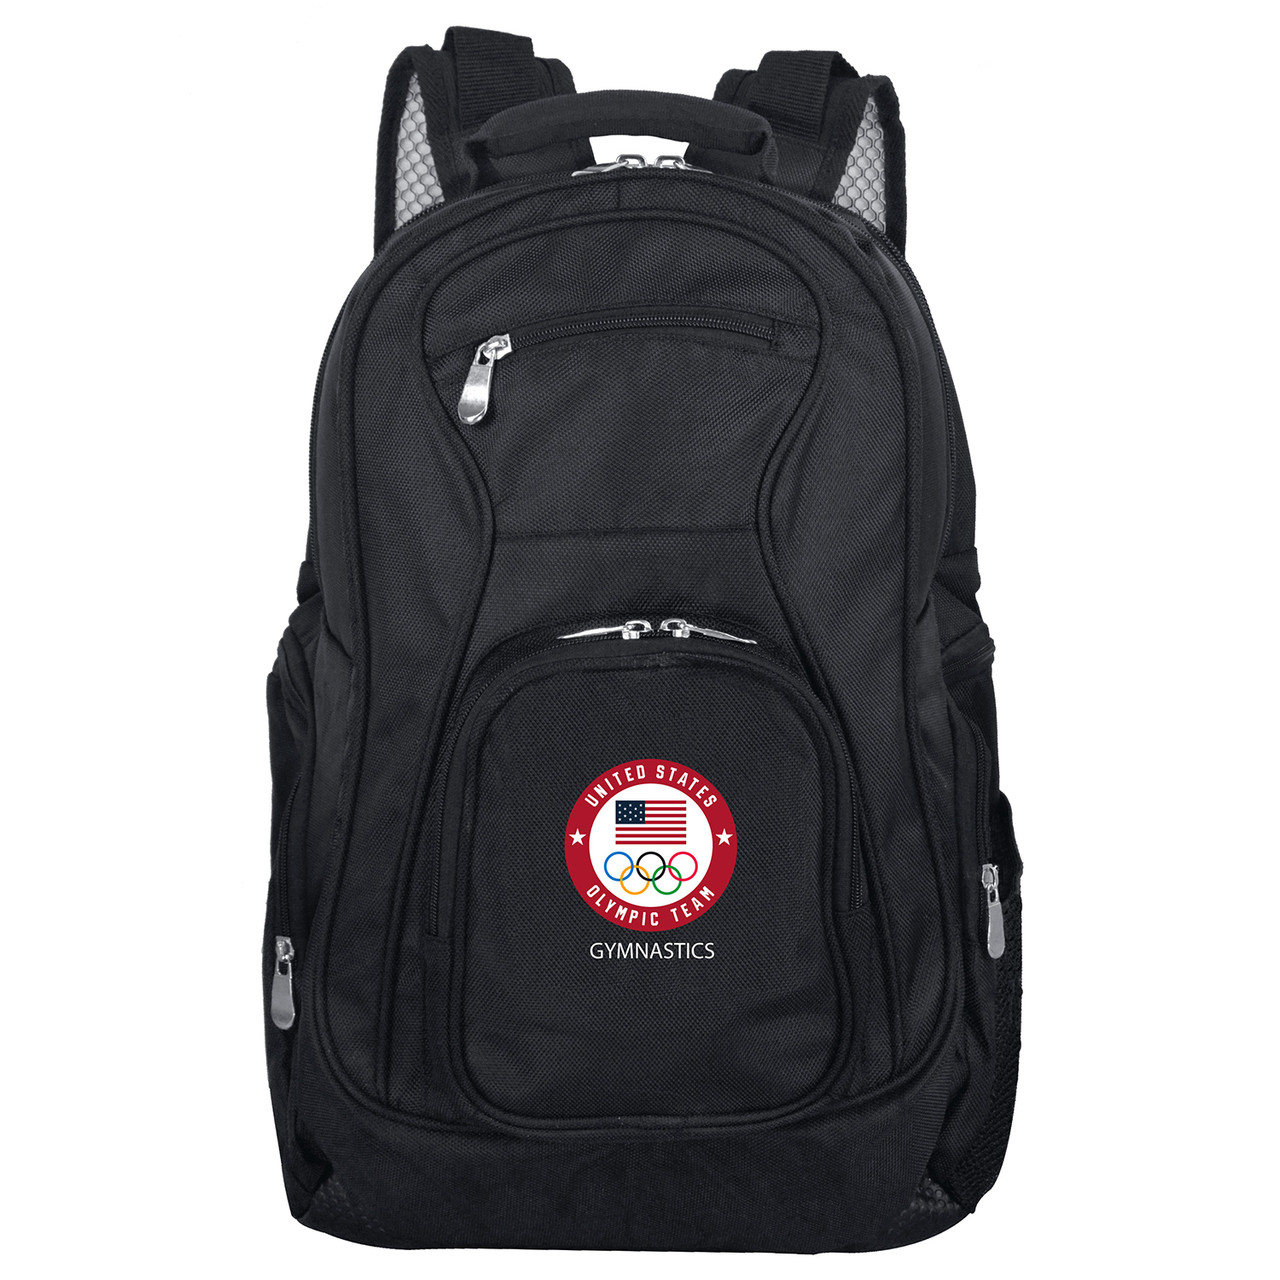 dcd4d035d1b1 Team USA Gymnastics Backpack. Loading zoom